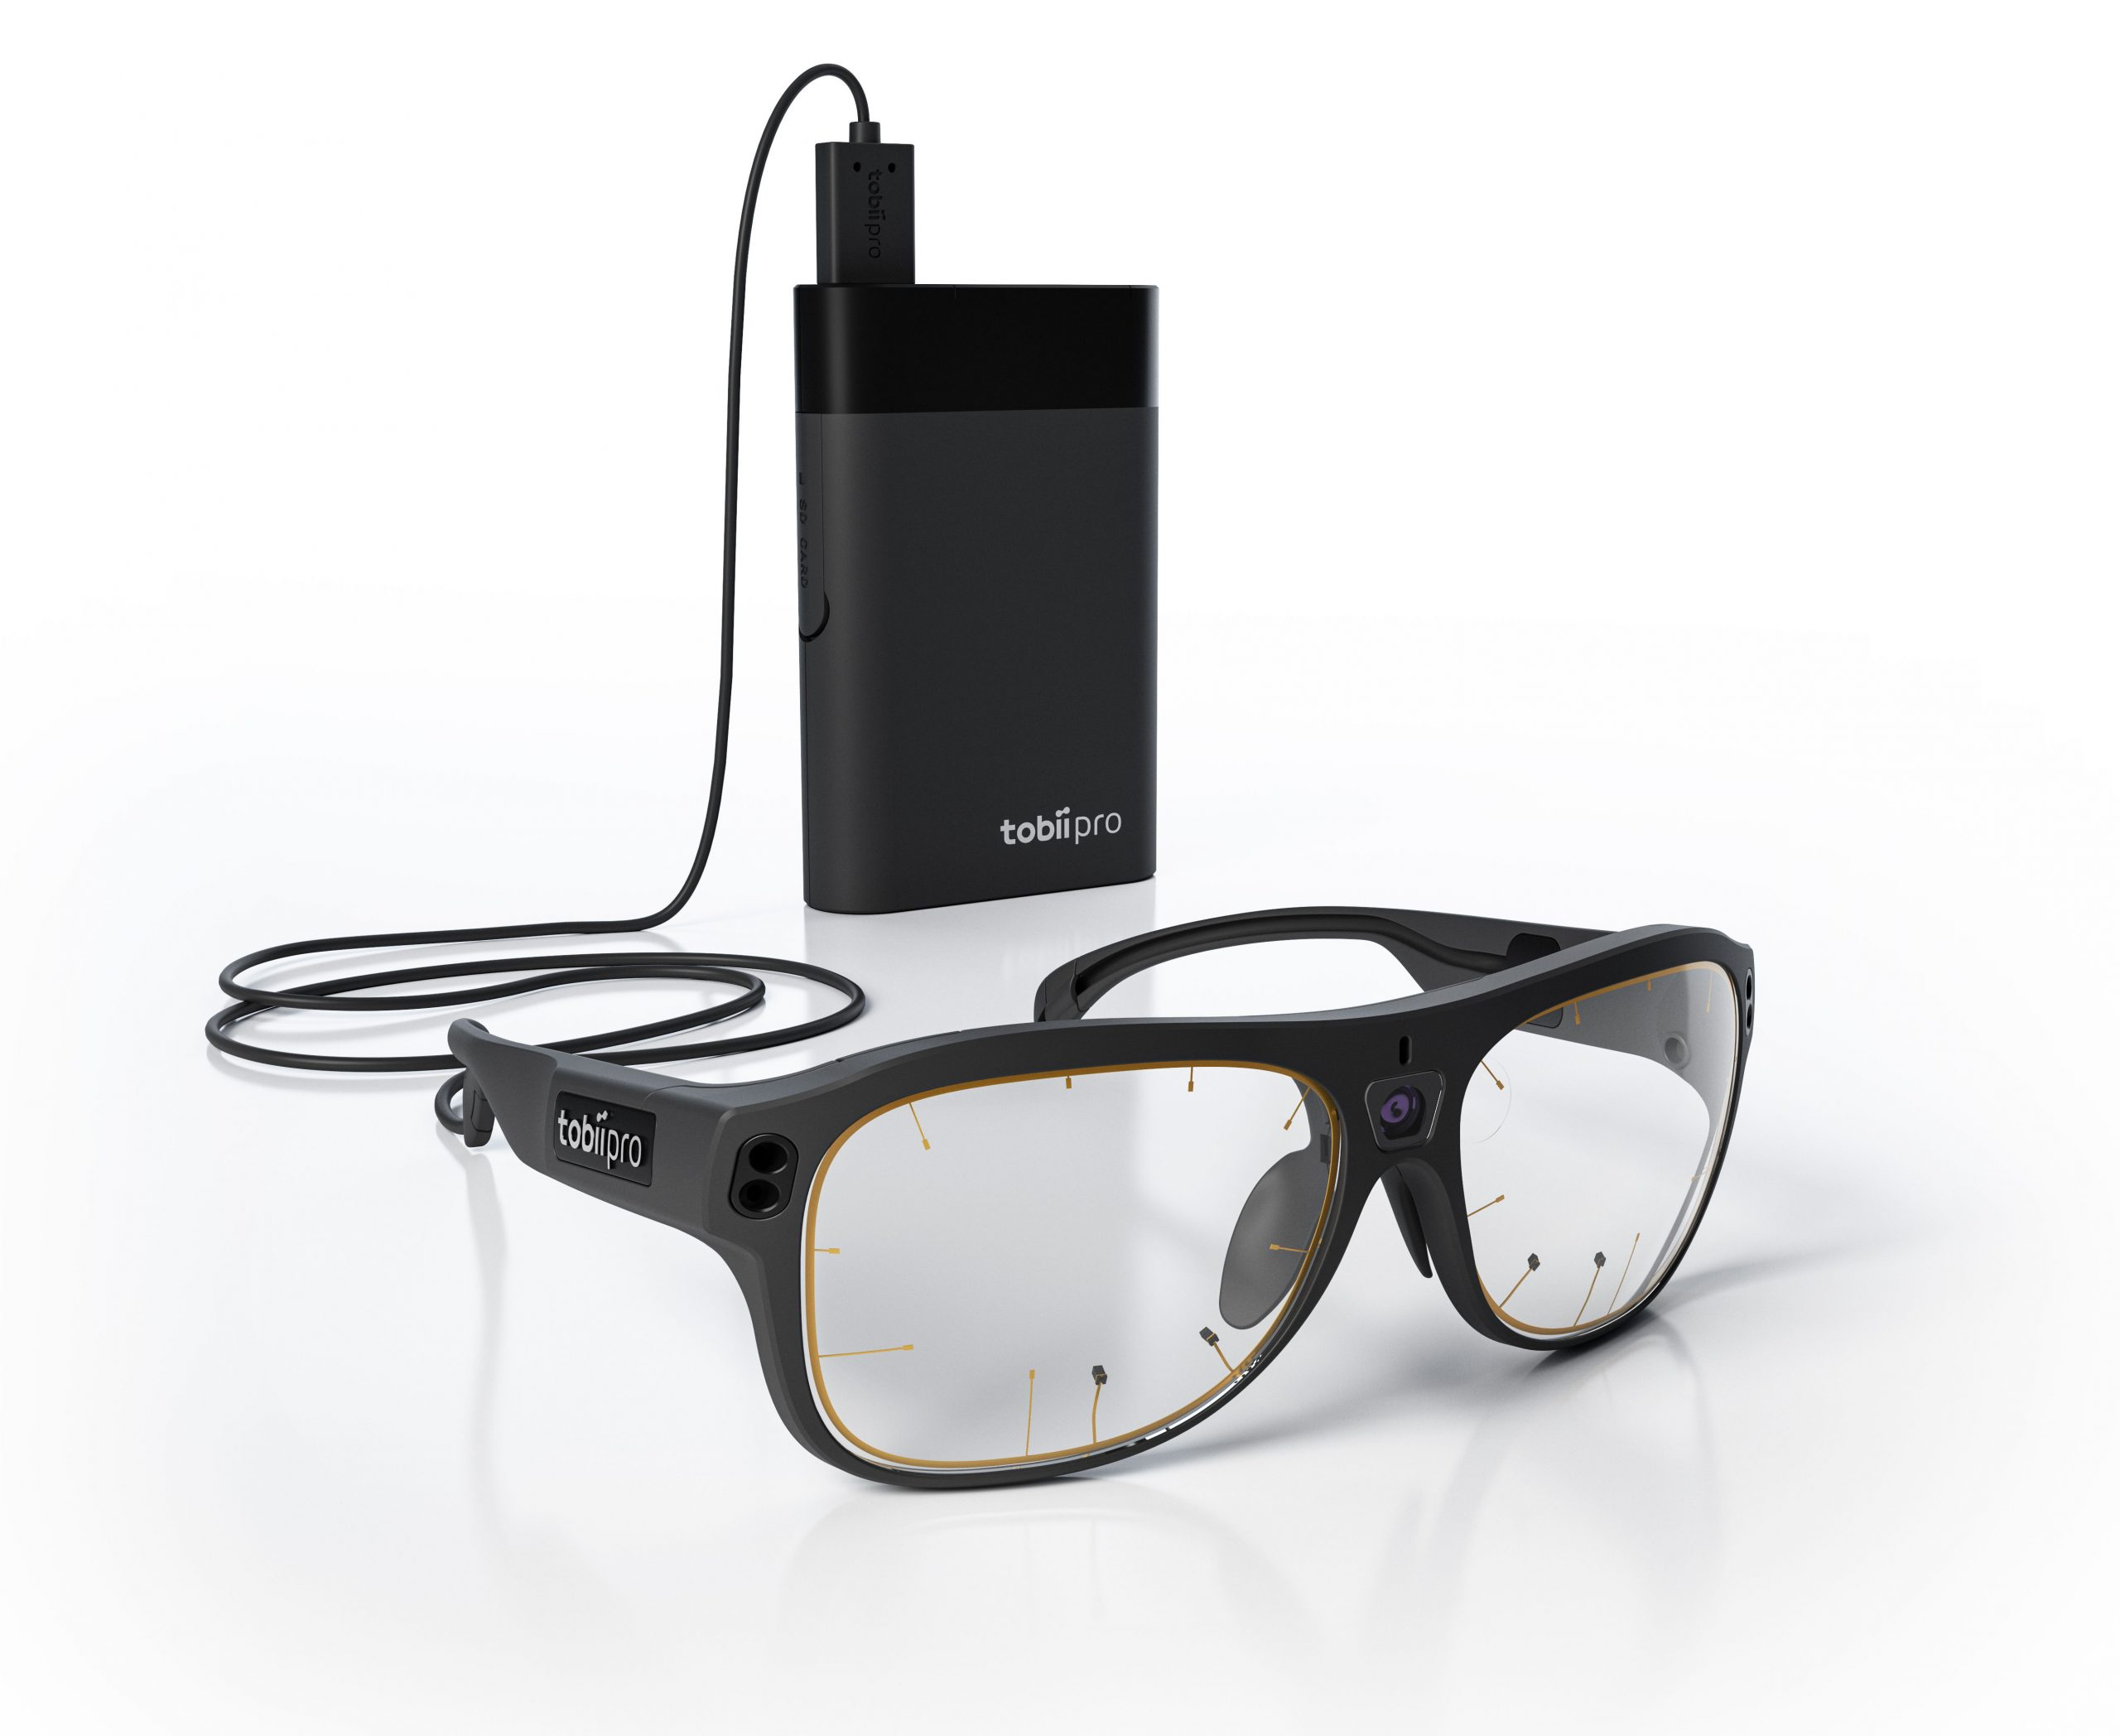 new tobii eye tracking glasses